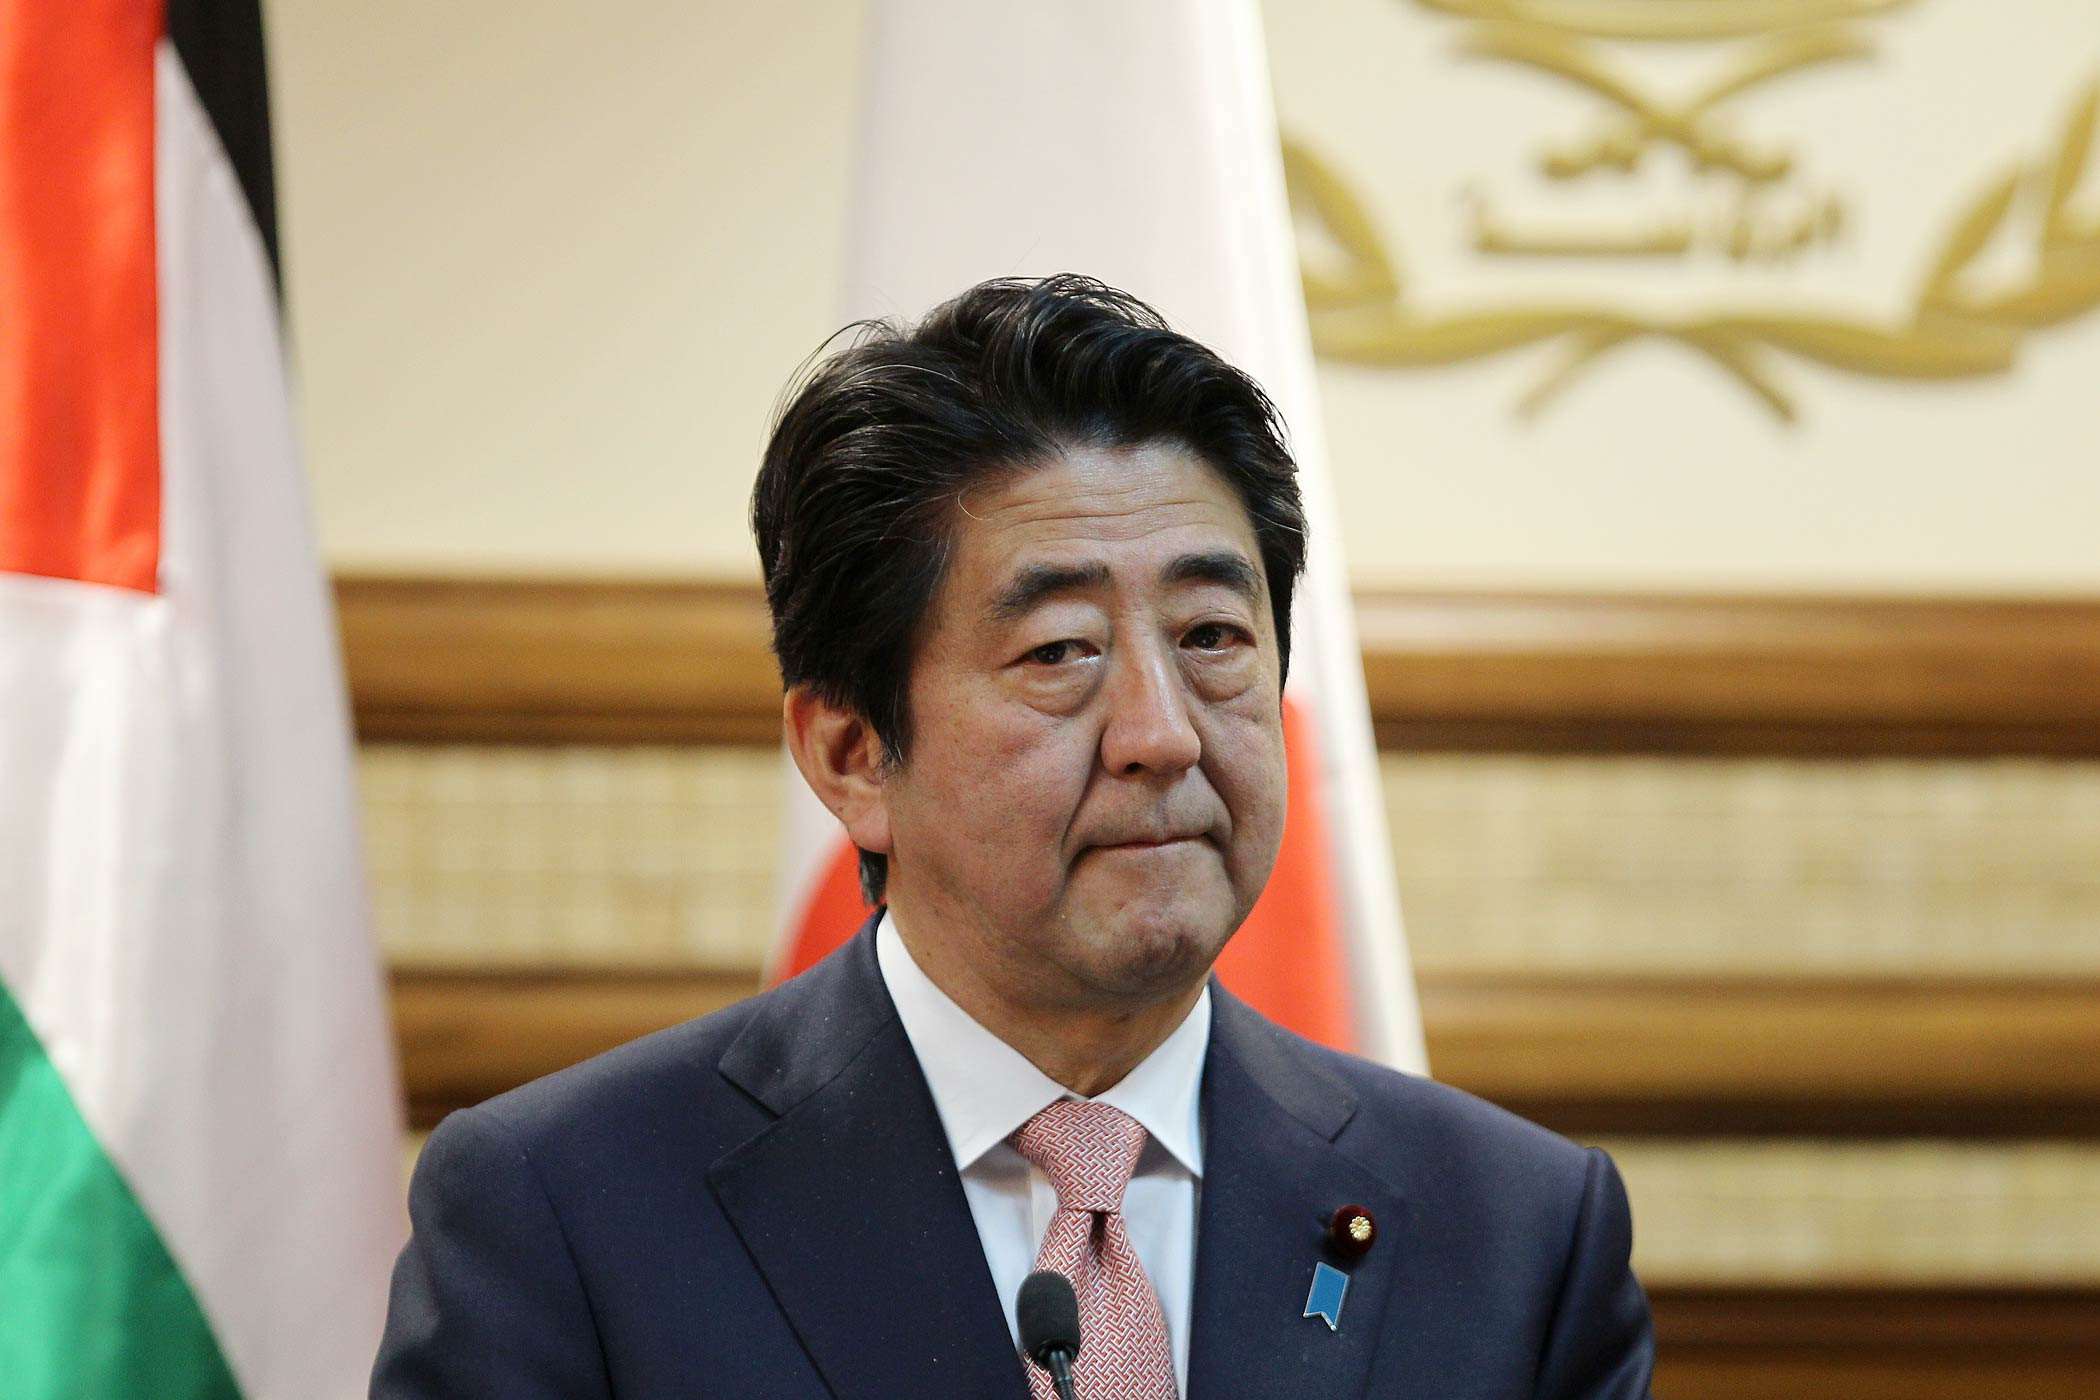 Japan's Prime Minister Shinzo Abe looks on during a press conference with Palestinian president Mahmud Abbas on Jan. 20, 2015, in the West Bank city of Ramallah.